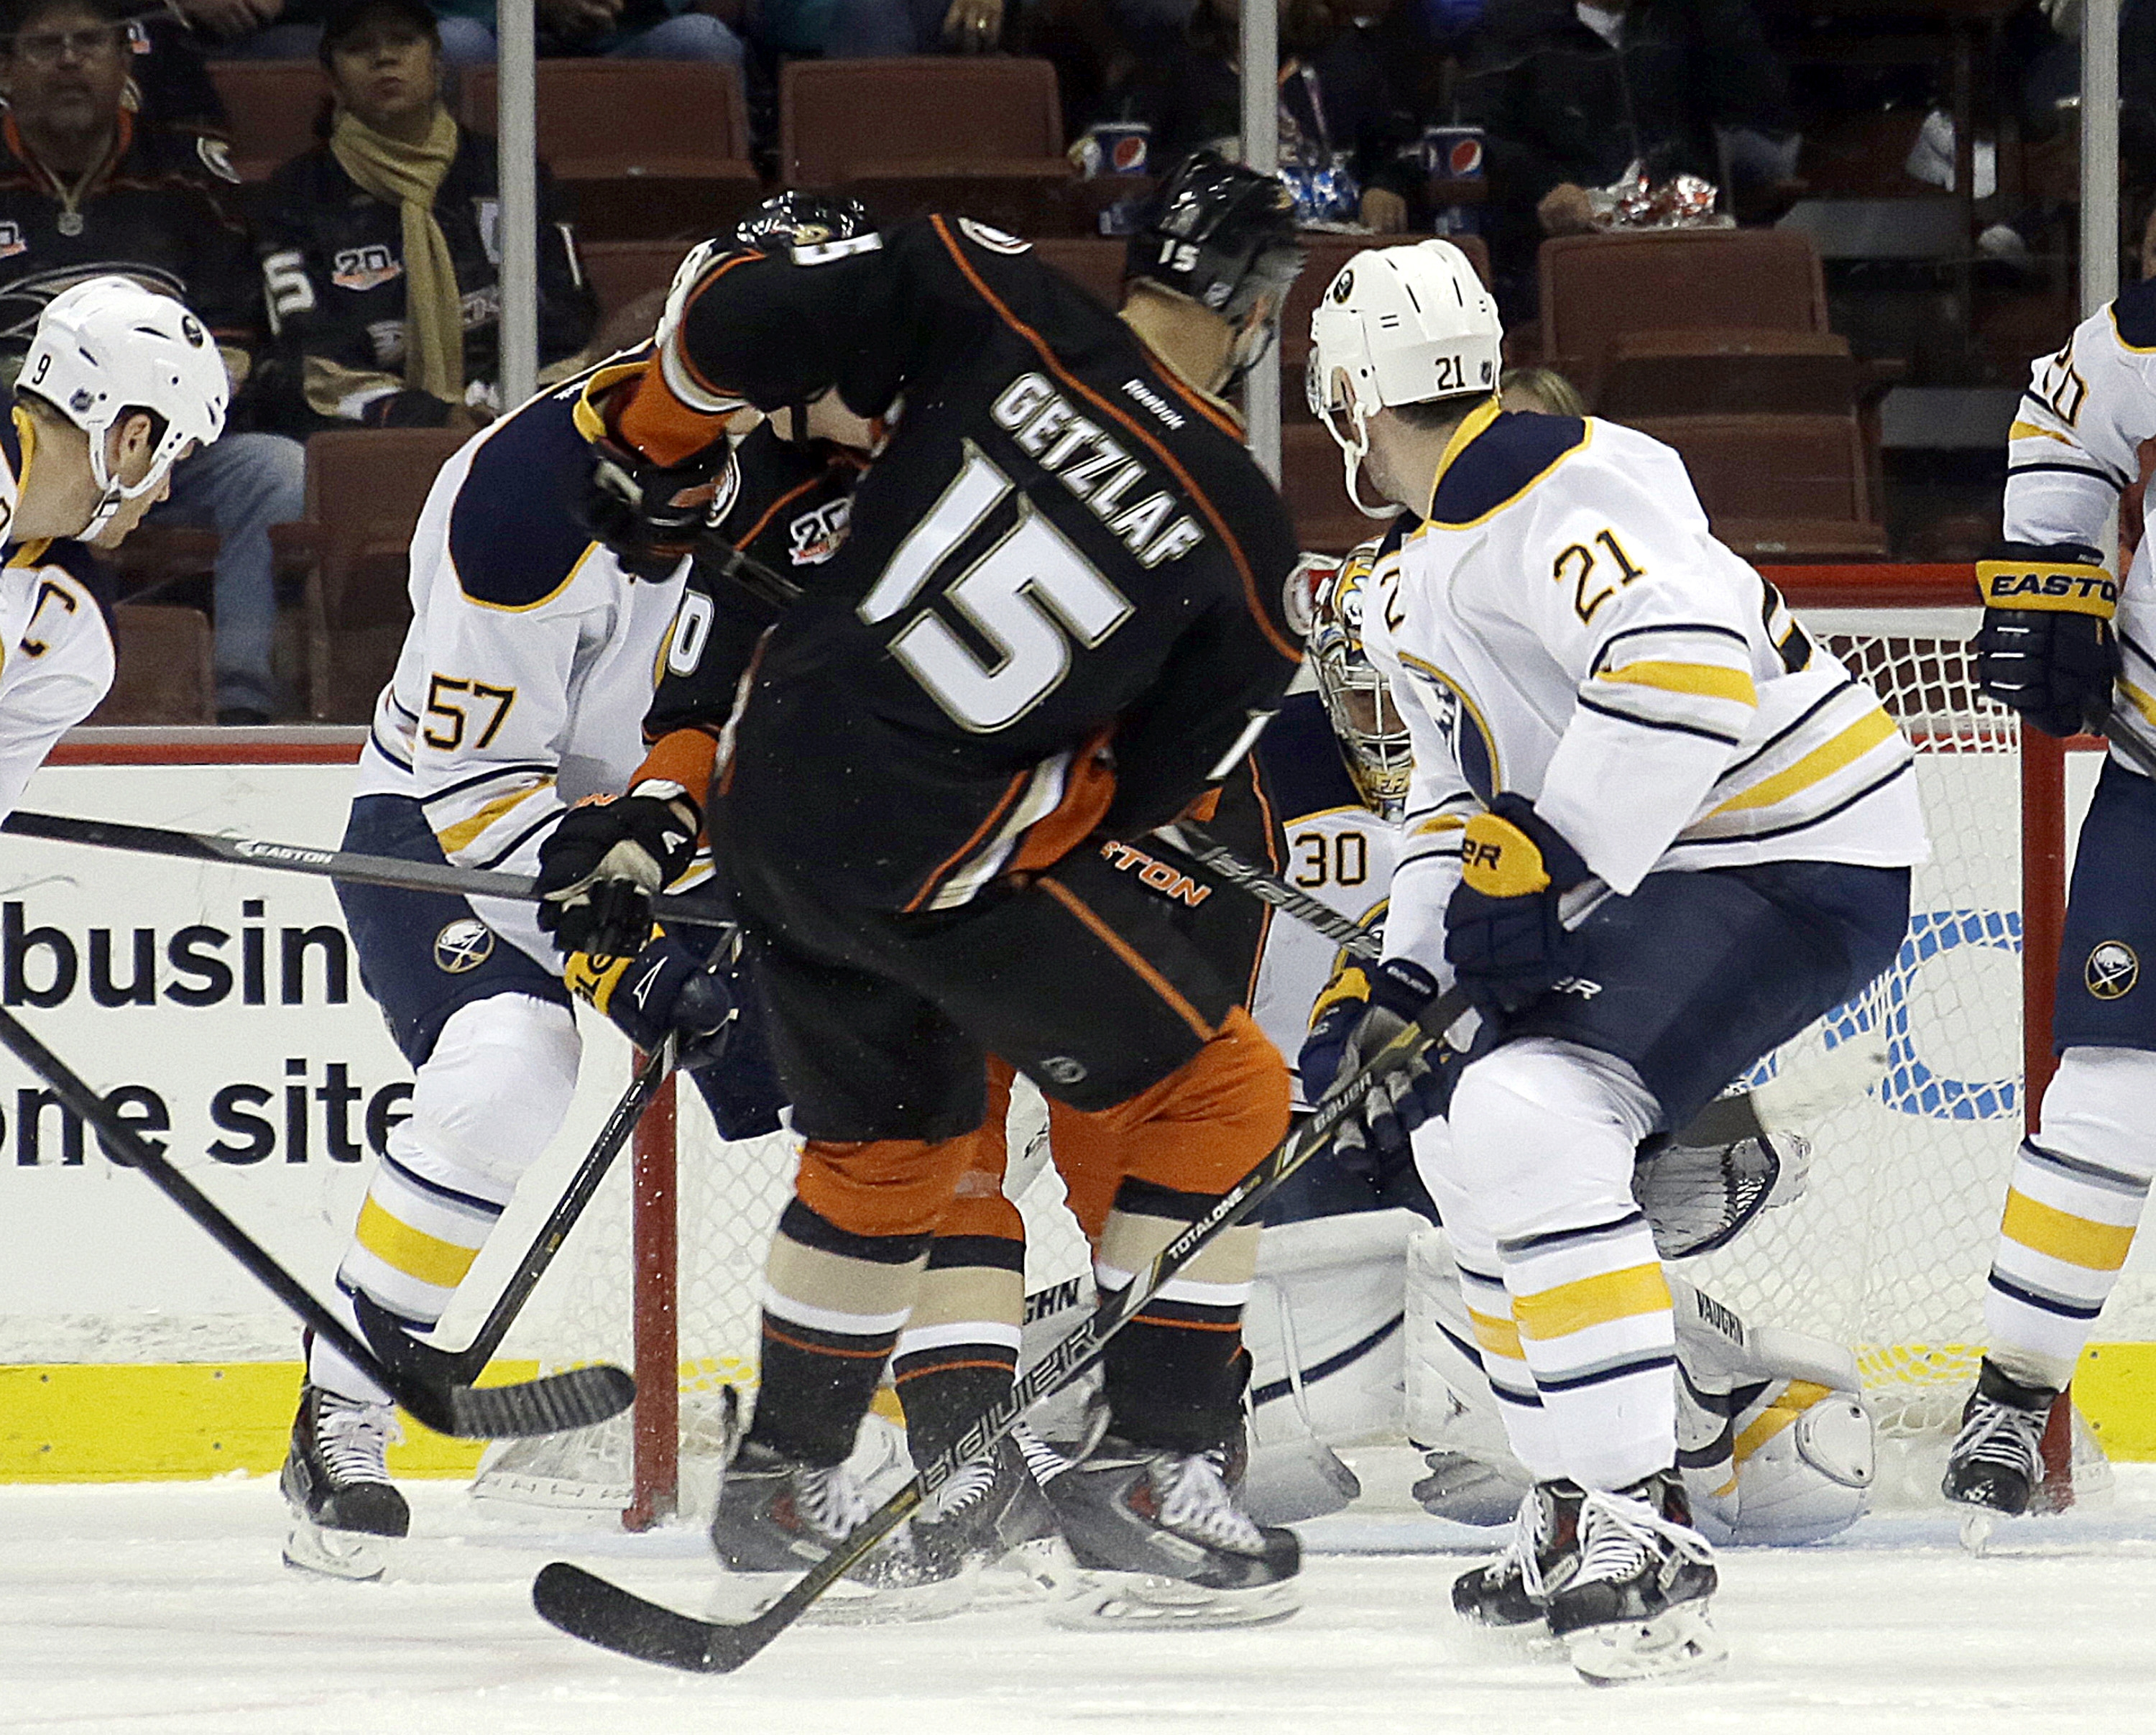 Anaheim Ducks center Ryan Getzlaf (15) fires through a crowd for his first of three goals in the first period against the Buffalo Sabres on Friday night at the Honda Center. (AP Photo/Reed Saxon)